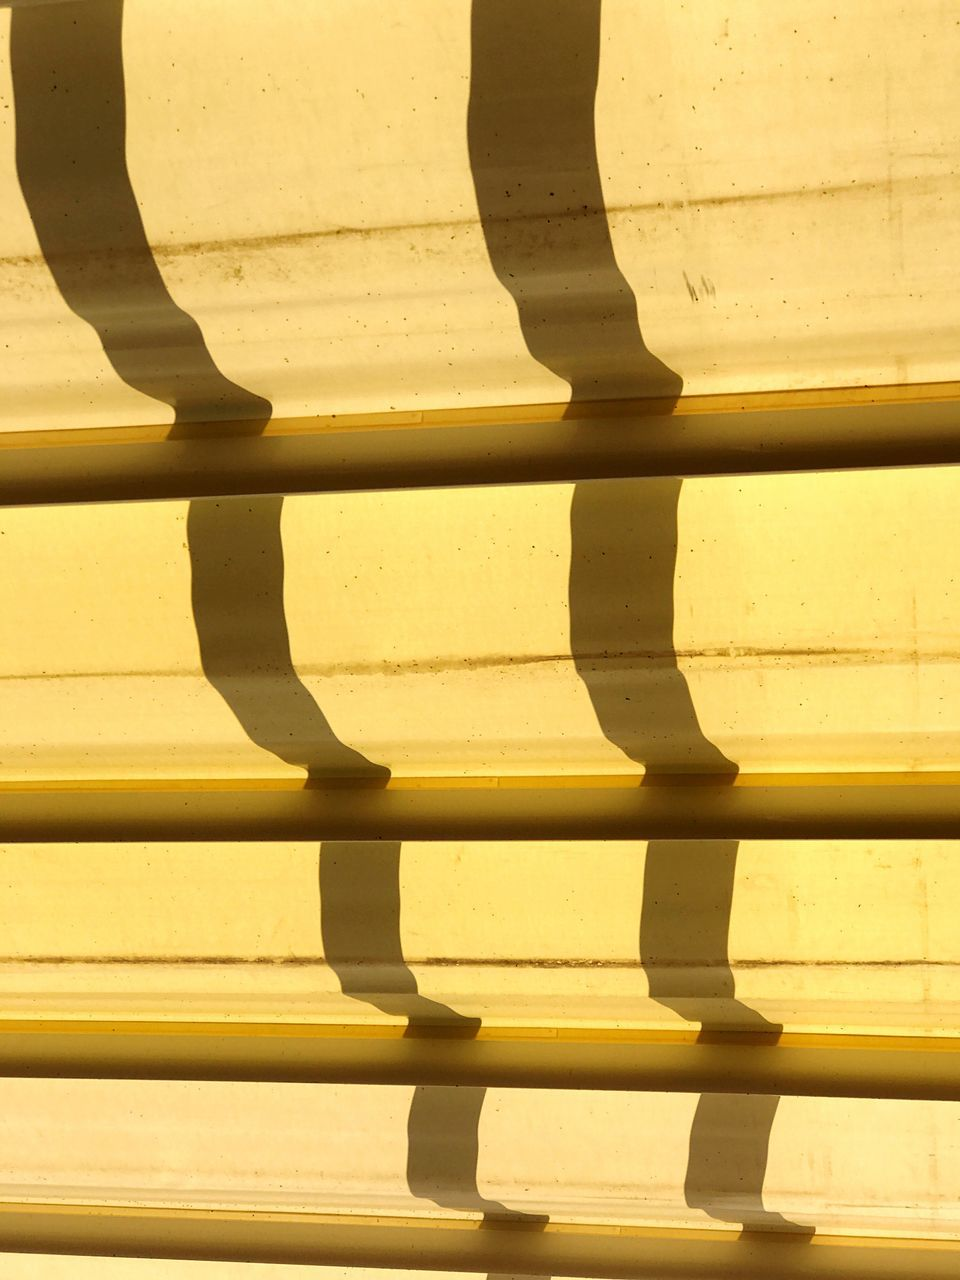 full frame, backgrounds, no people, close-up, yellow, shadow, sunlight, outdoors, day, architecture, line, chess piece